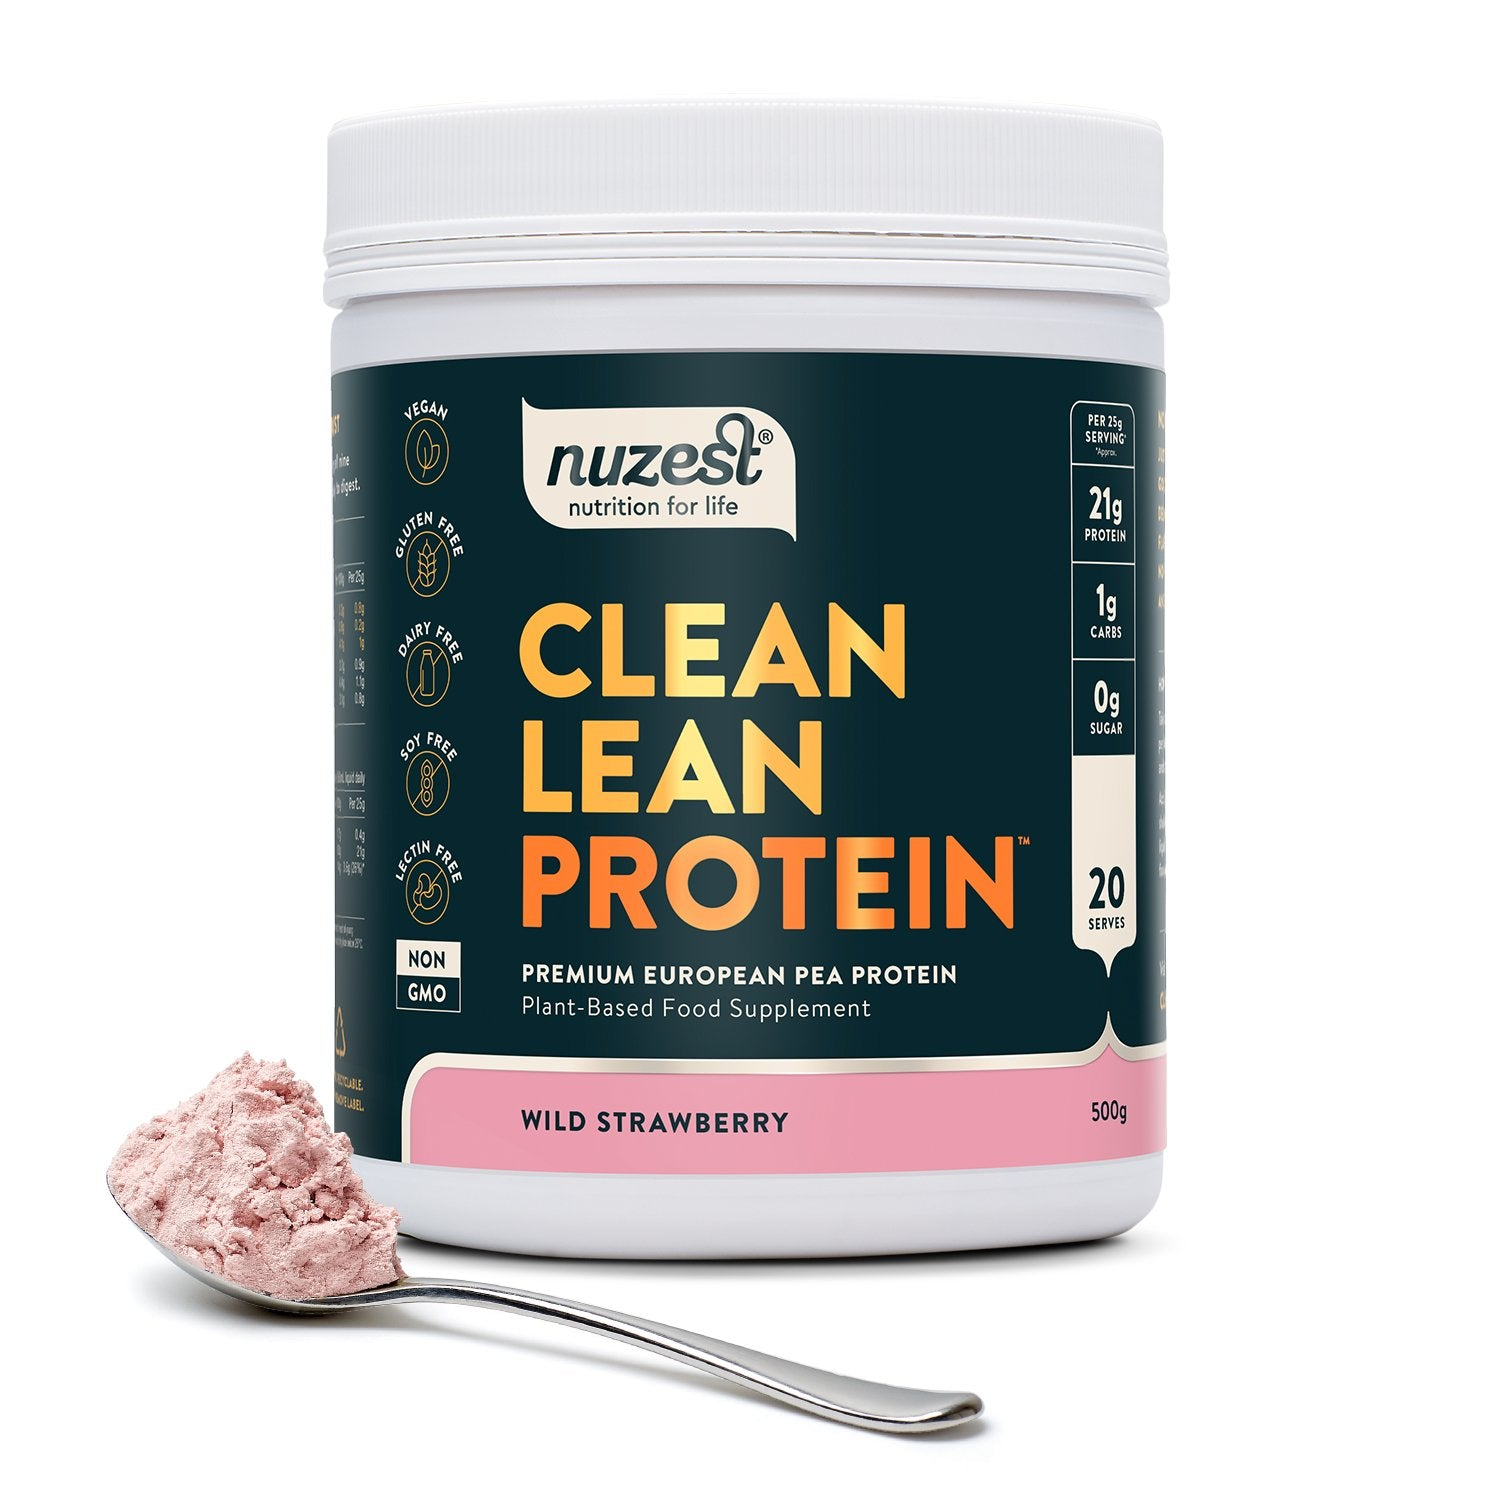 Clean Lean Protein Wild Strawberry, Organic Pea Protein 500g